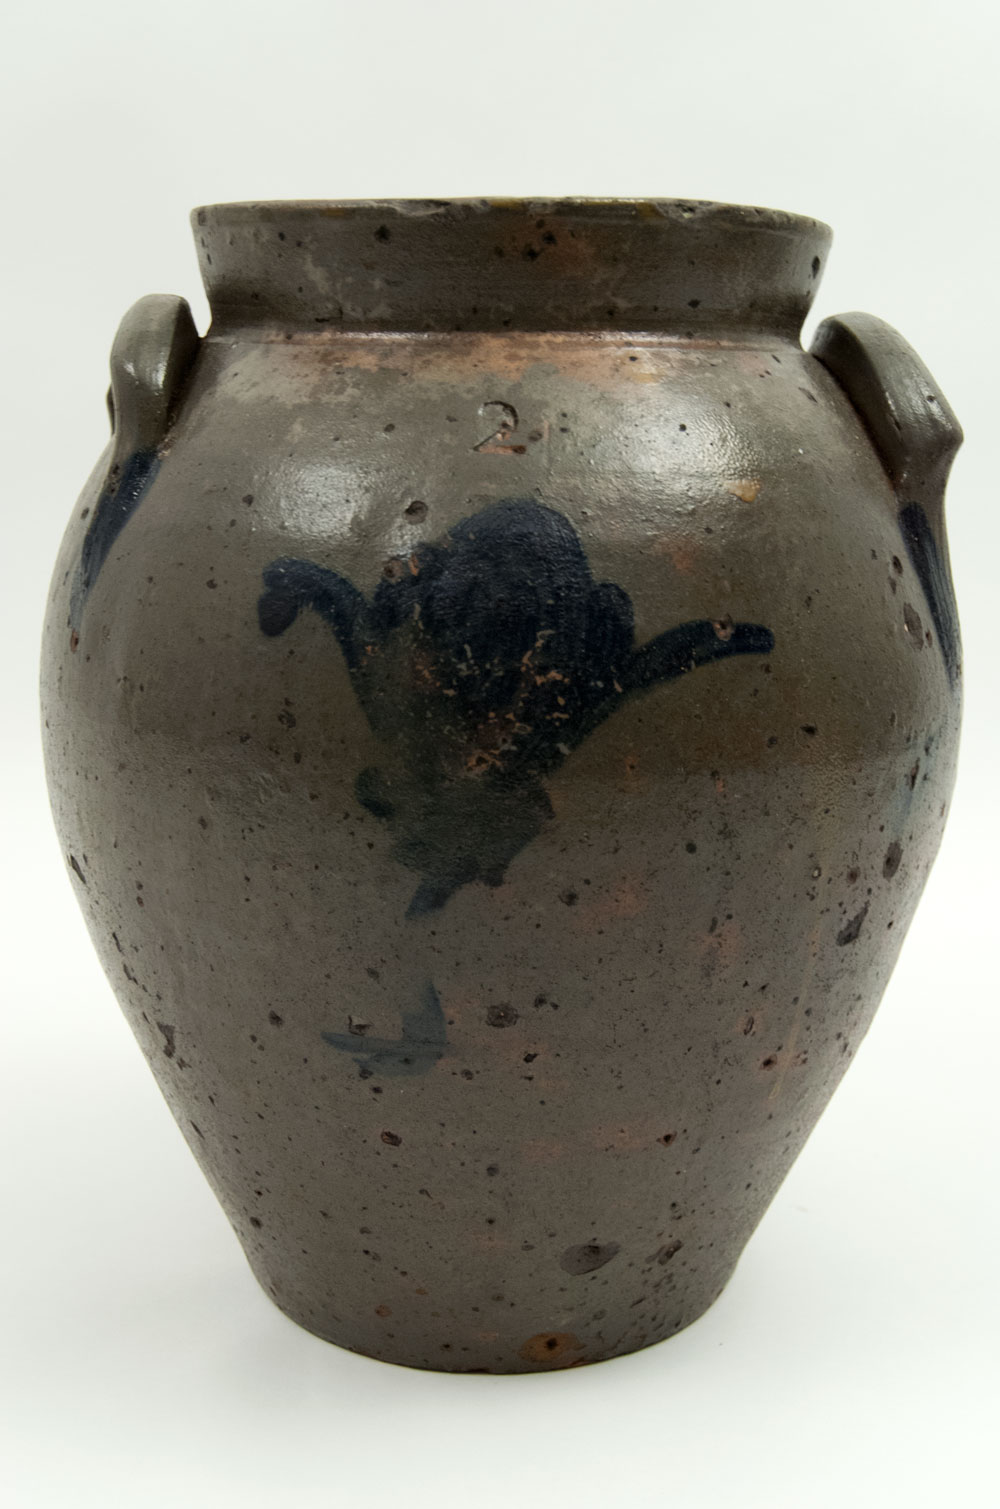 Early Ohio Two Gallon Ovoid Salt Glazed Storage Jarcontact us» | about us»